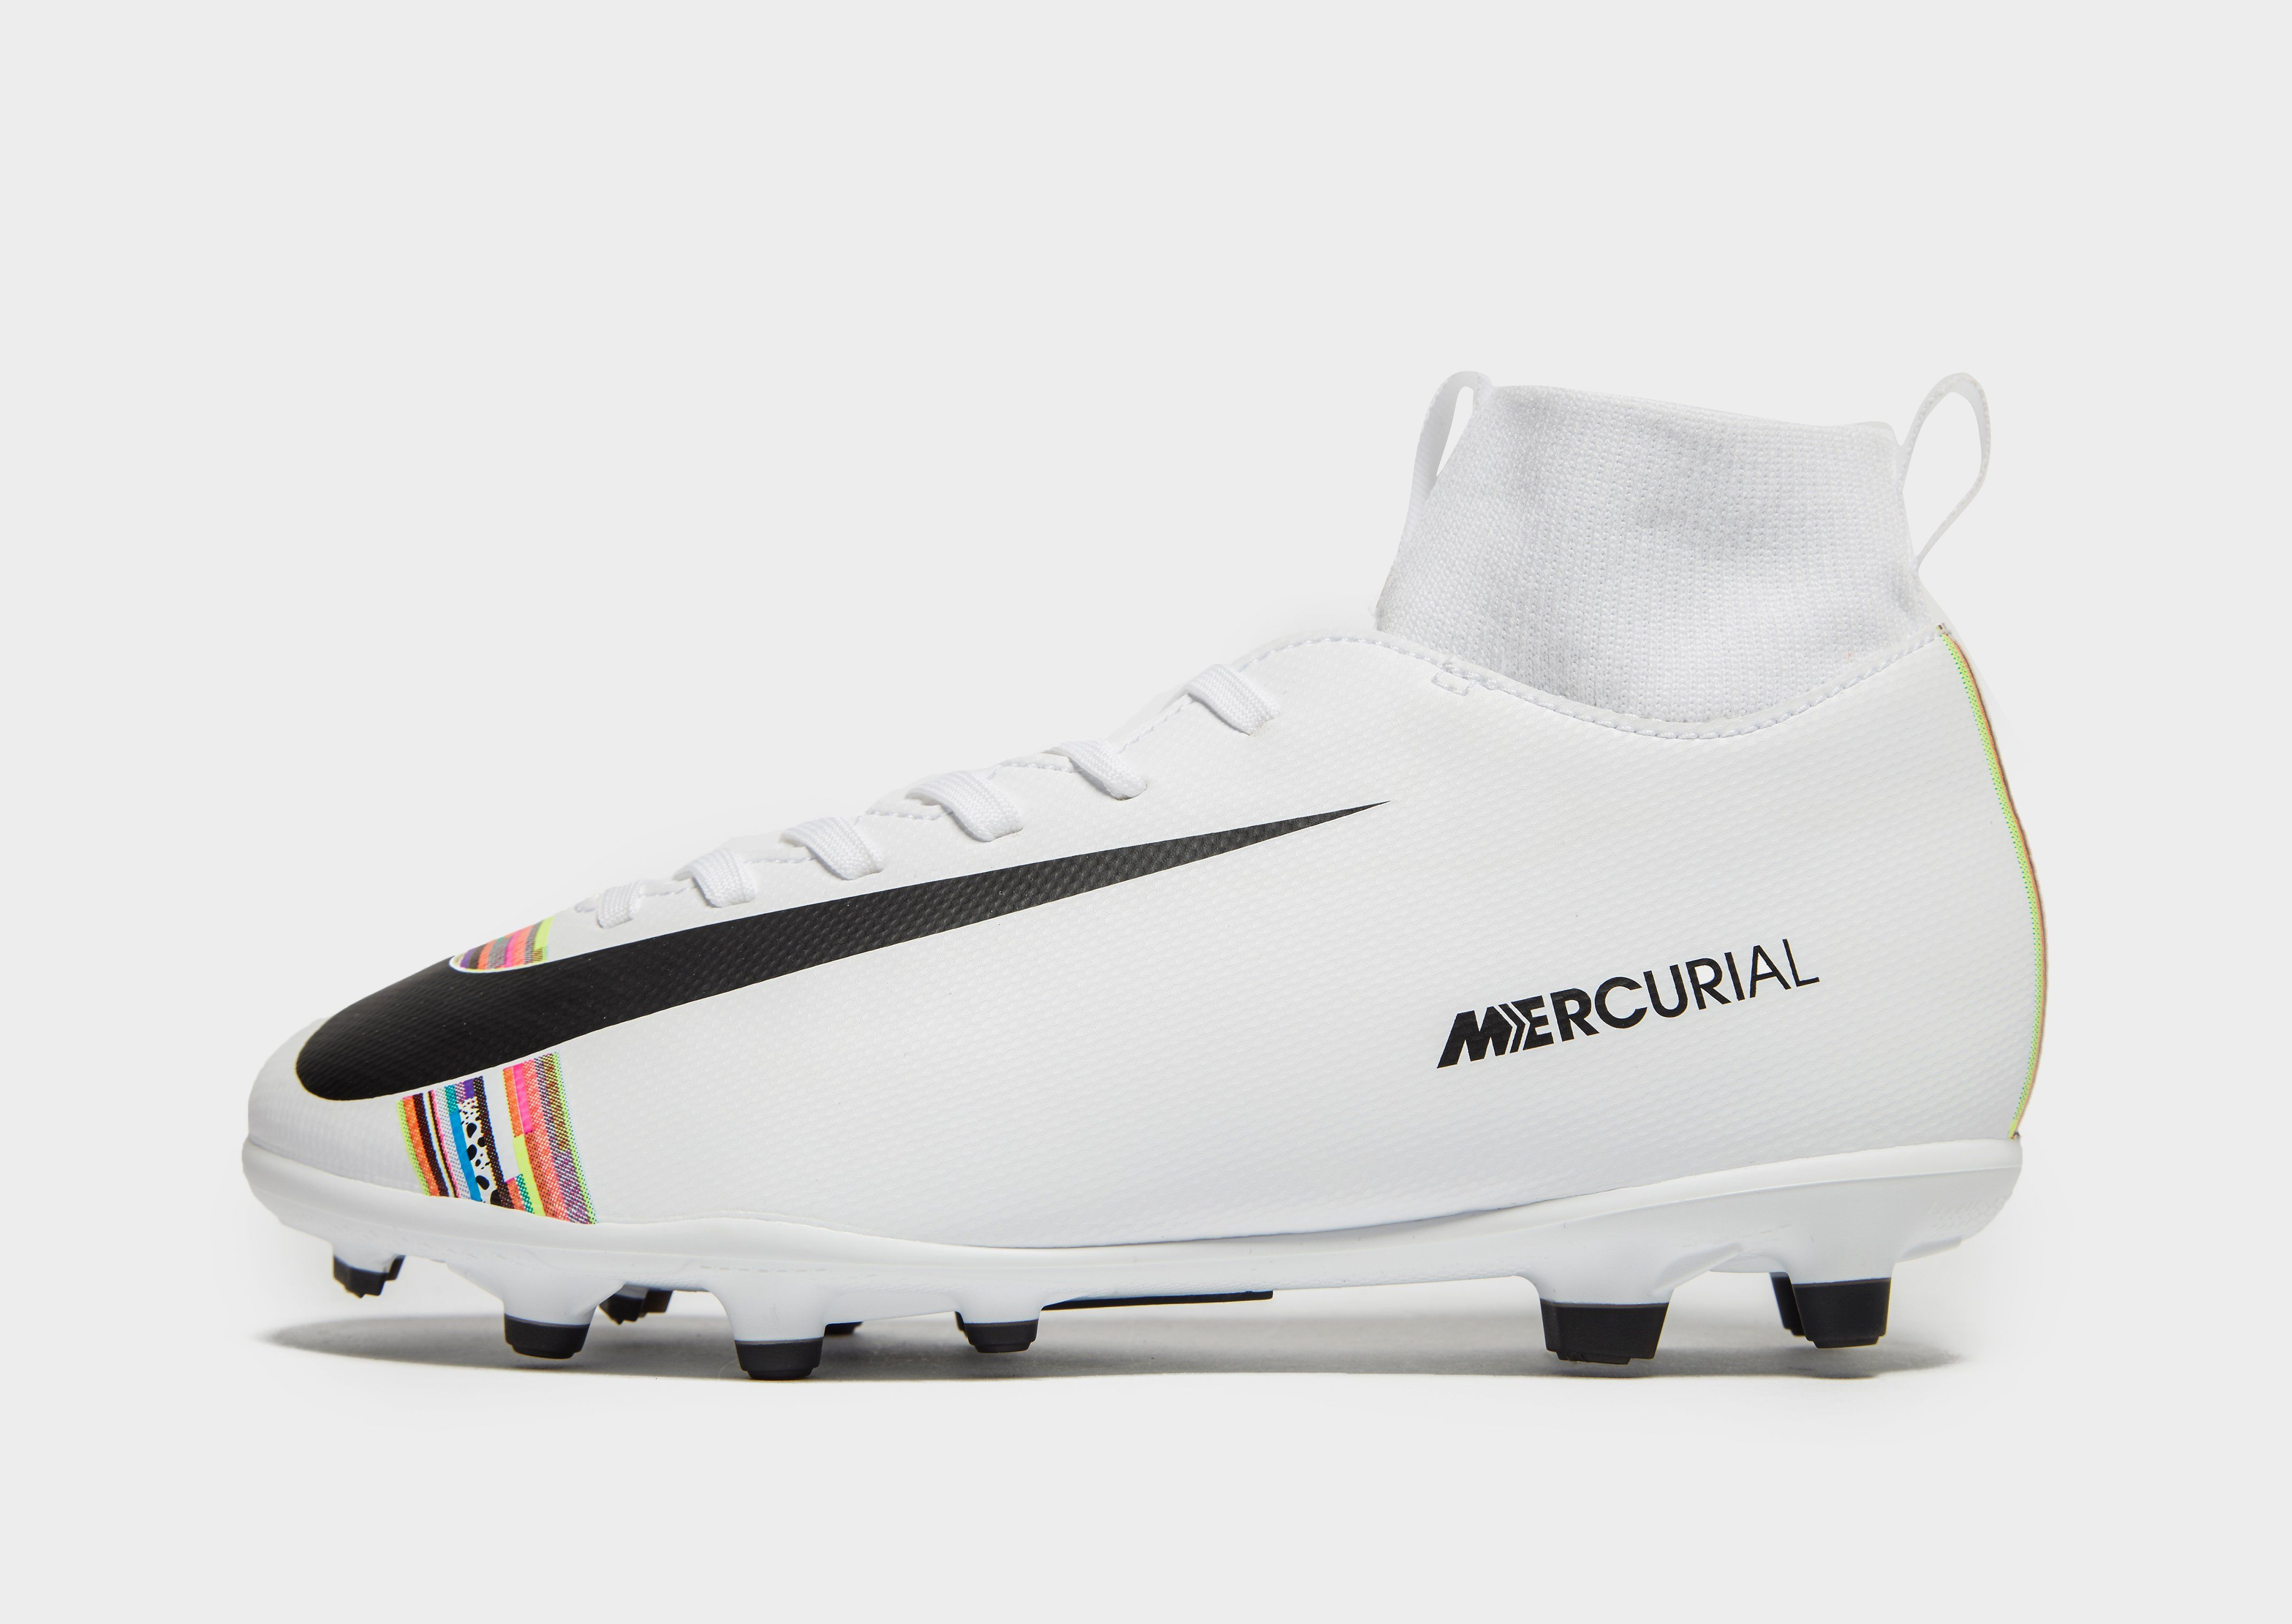 6cc47a2ba NIKE Nike Jr. Mercurial Superfly VI Club CR7 Younger Older Kids   Multi-Ground Football Boot